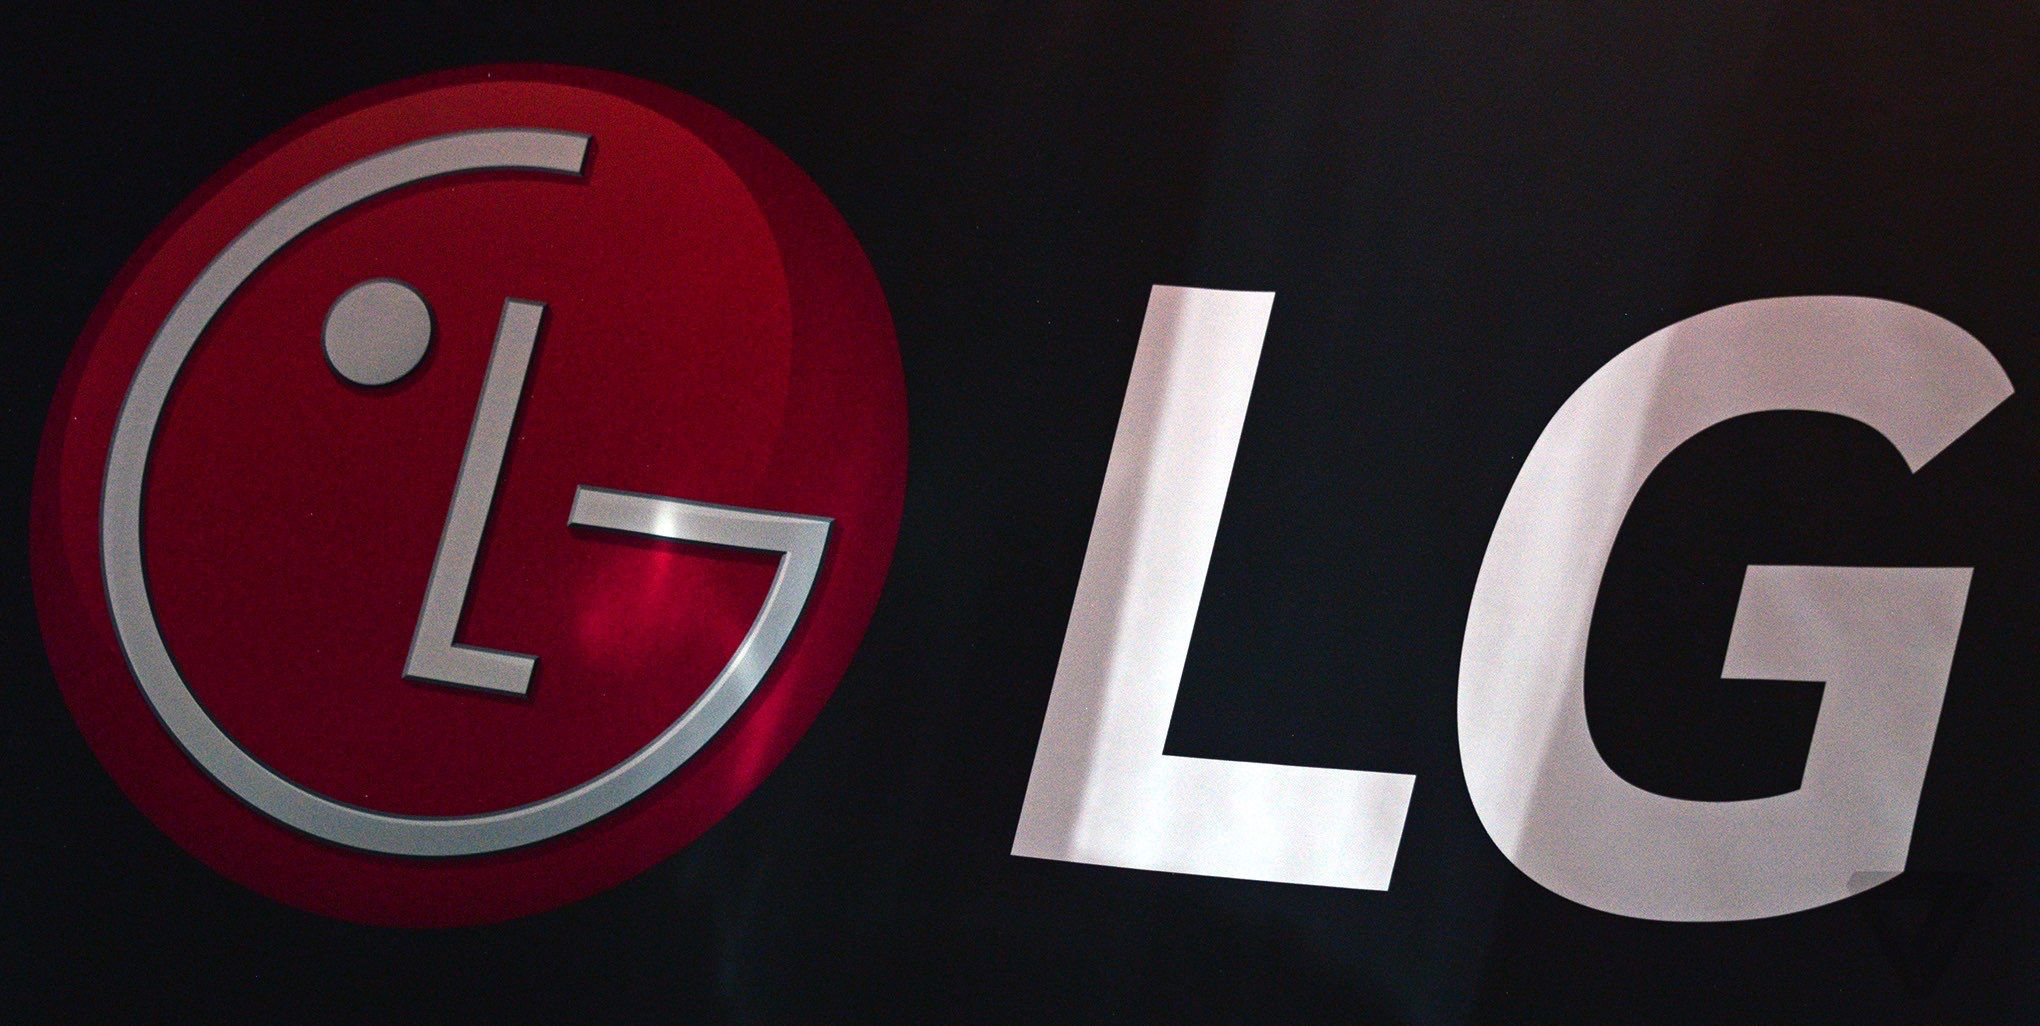 LG Logo - LG has quietly updated its logo | The Verge